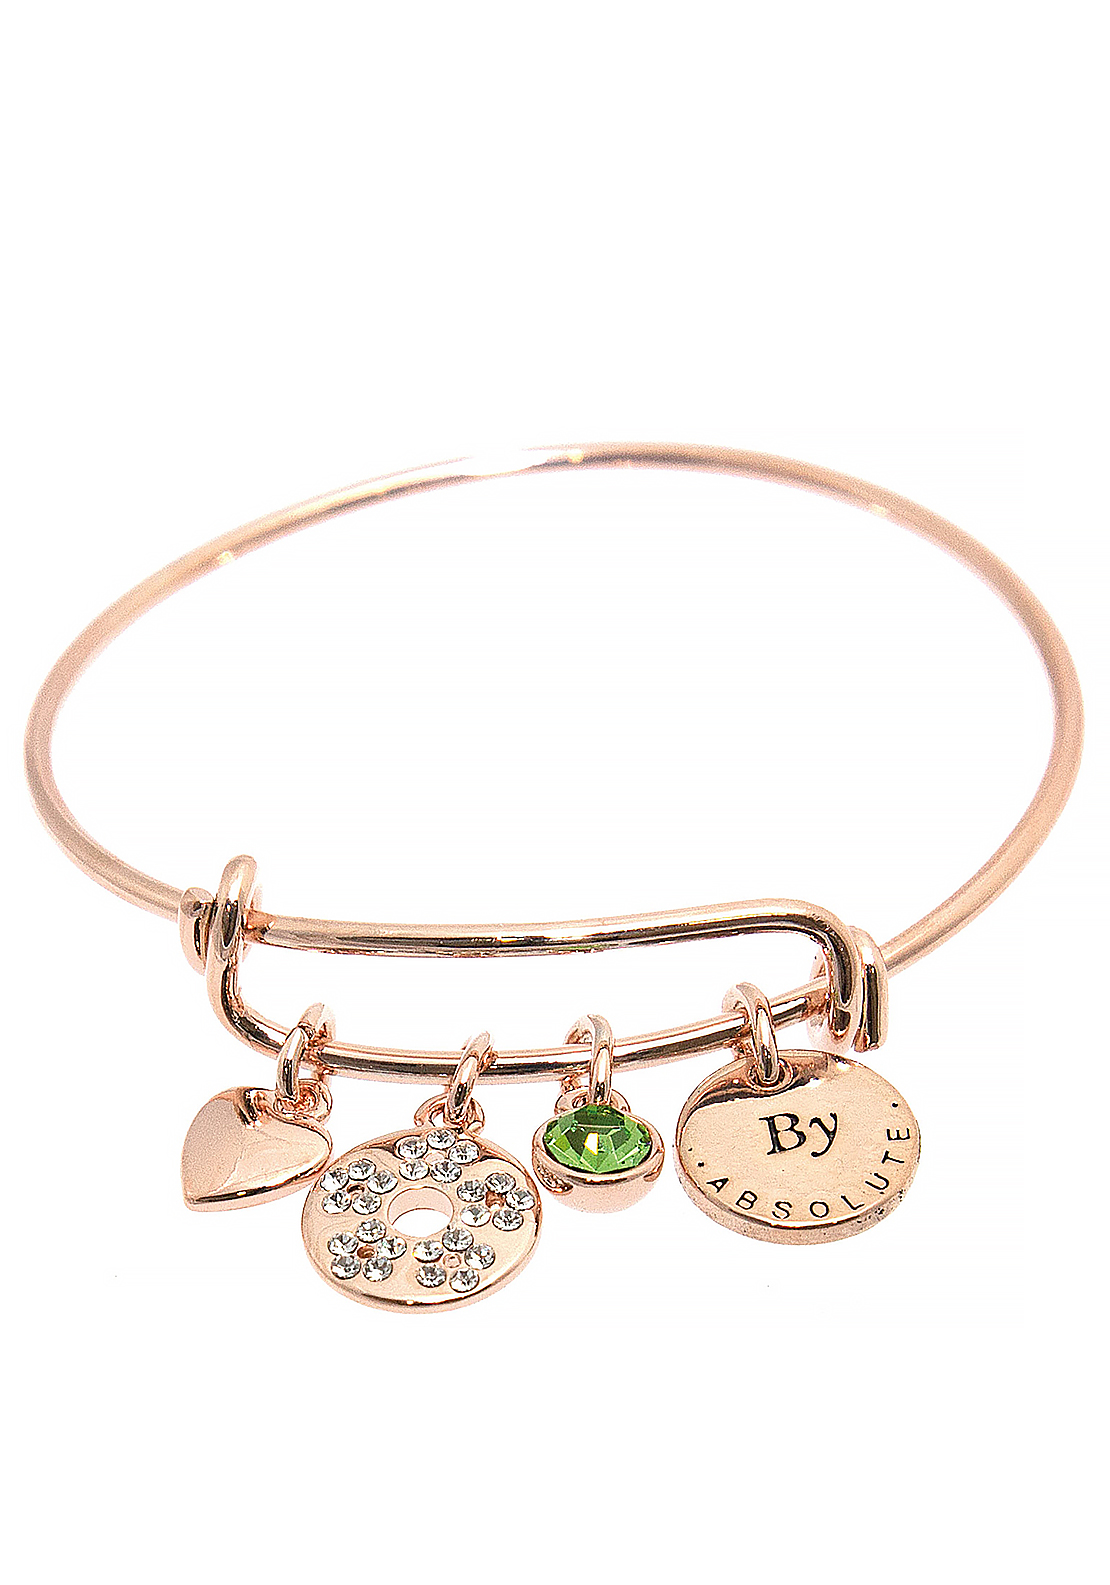 Absolute Jewellery Girls August Charm Bangle, Rose Gold